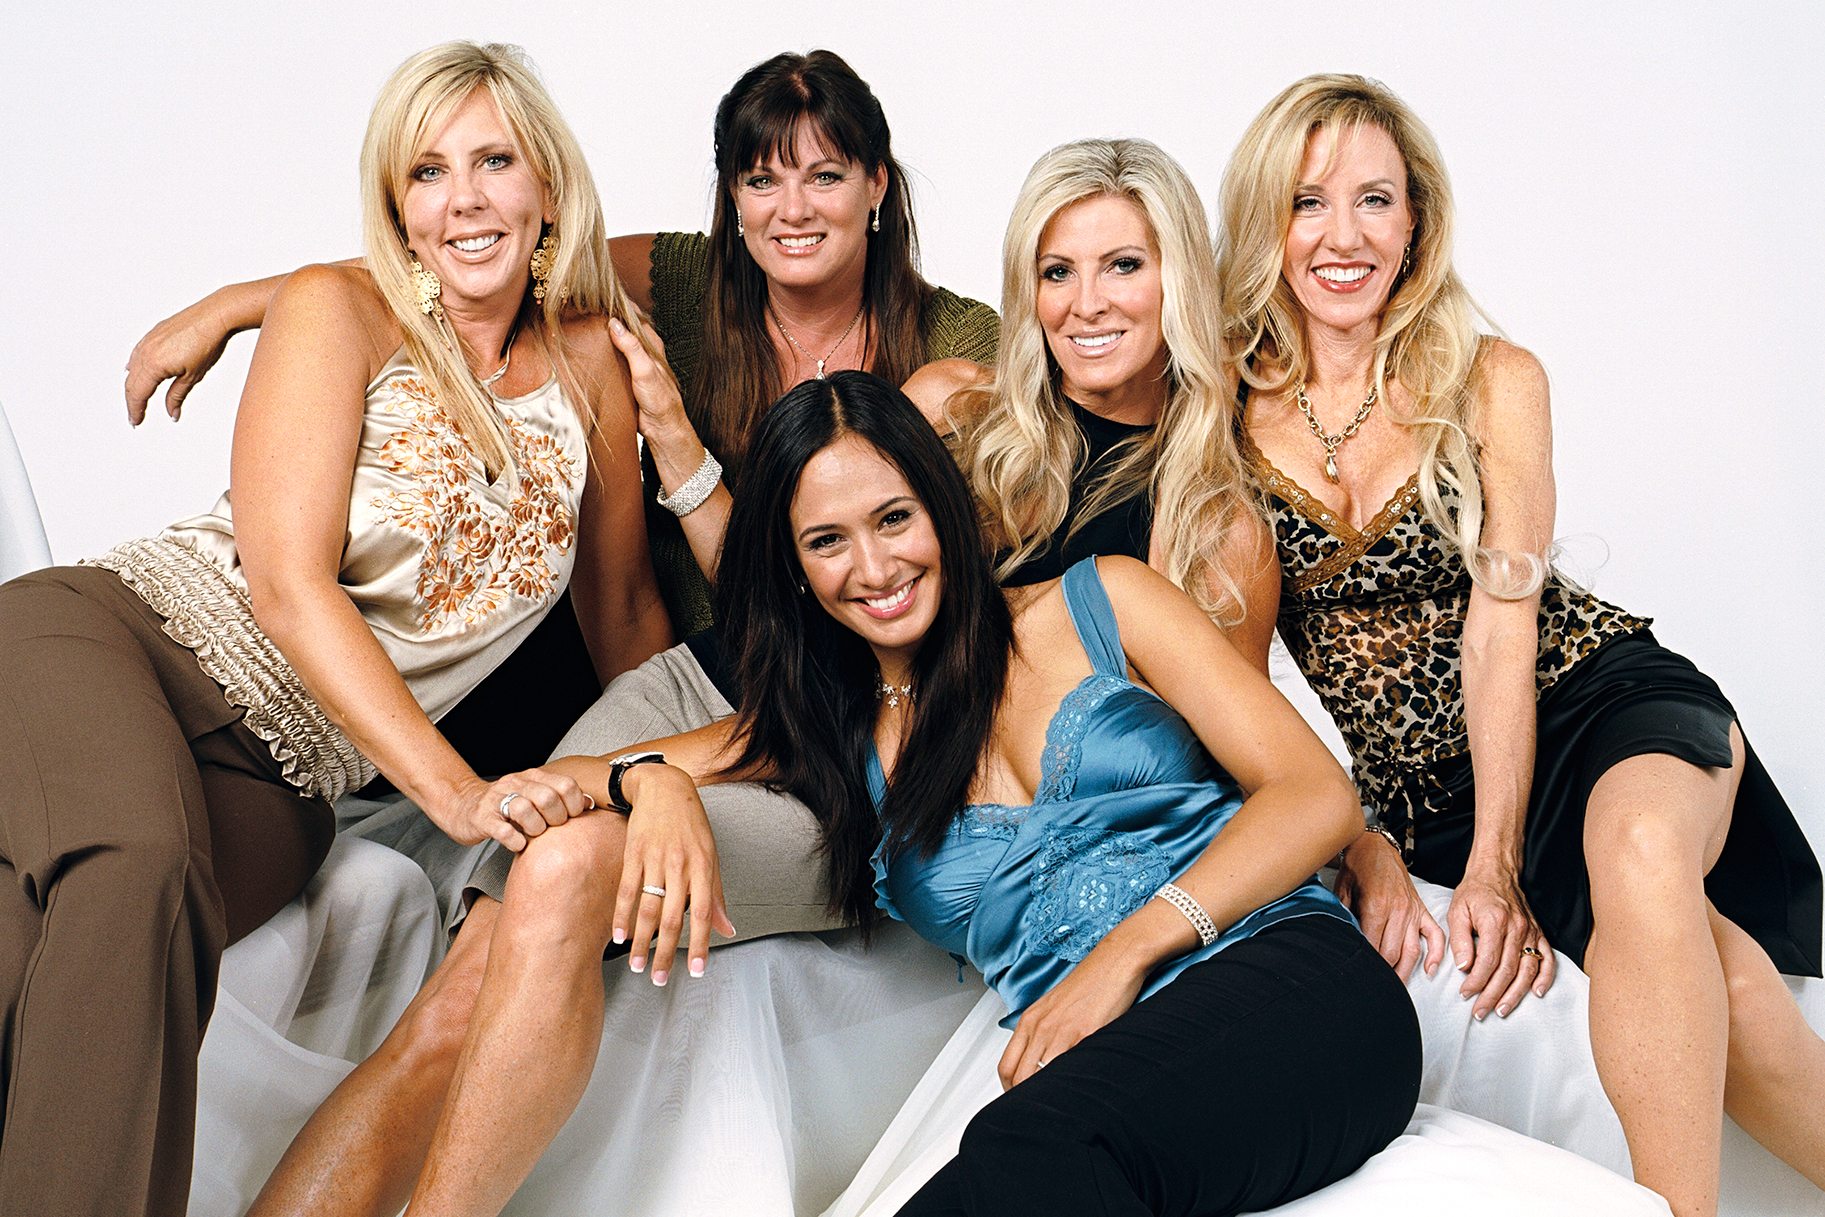 The Real Housewives of Orange County - Season 7 Episode 9 ...